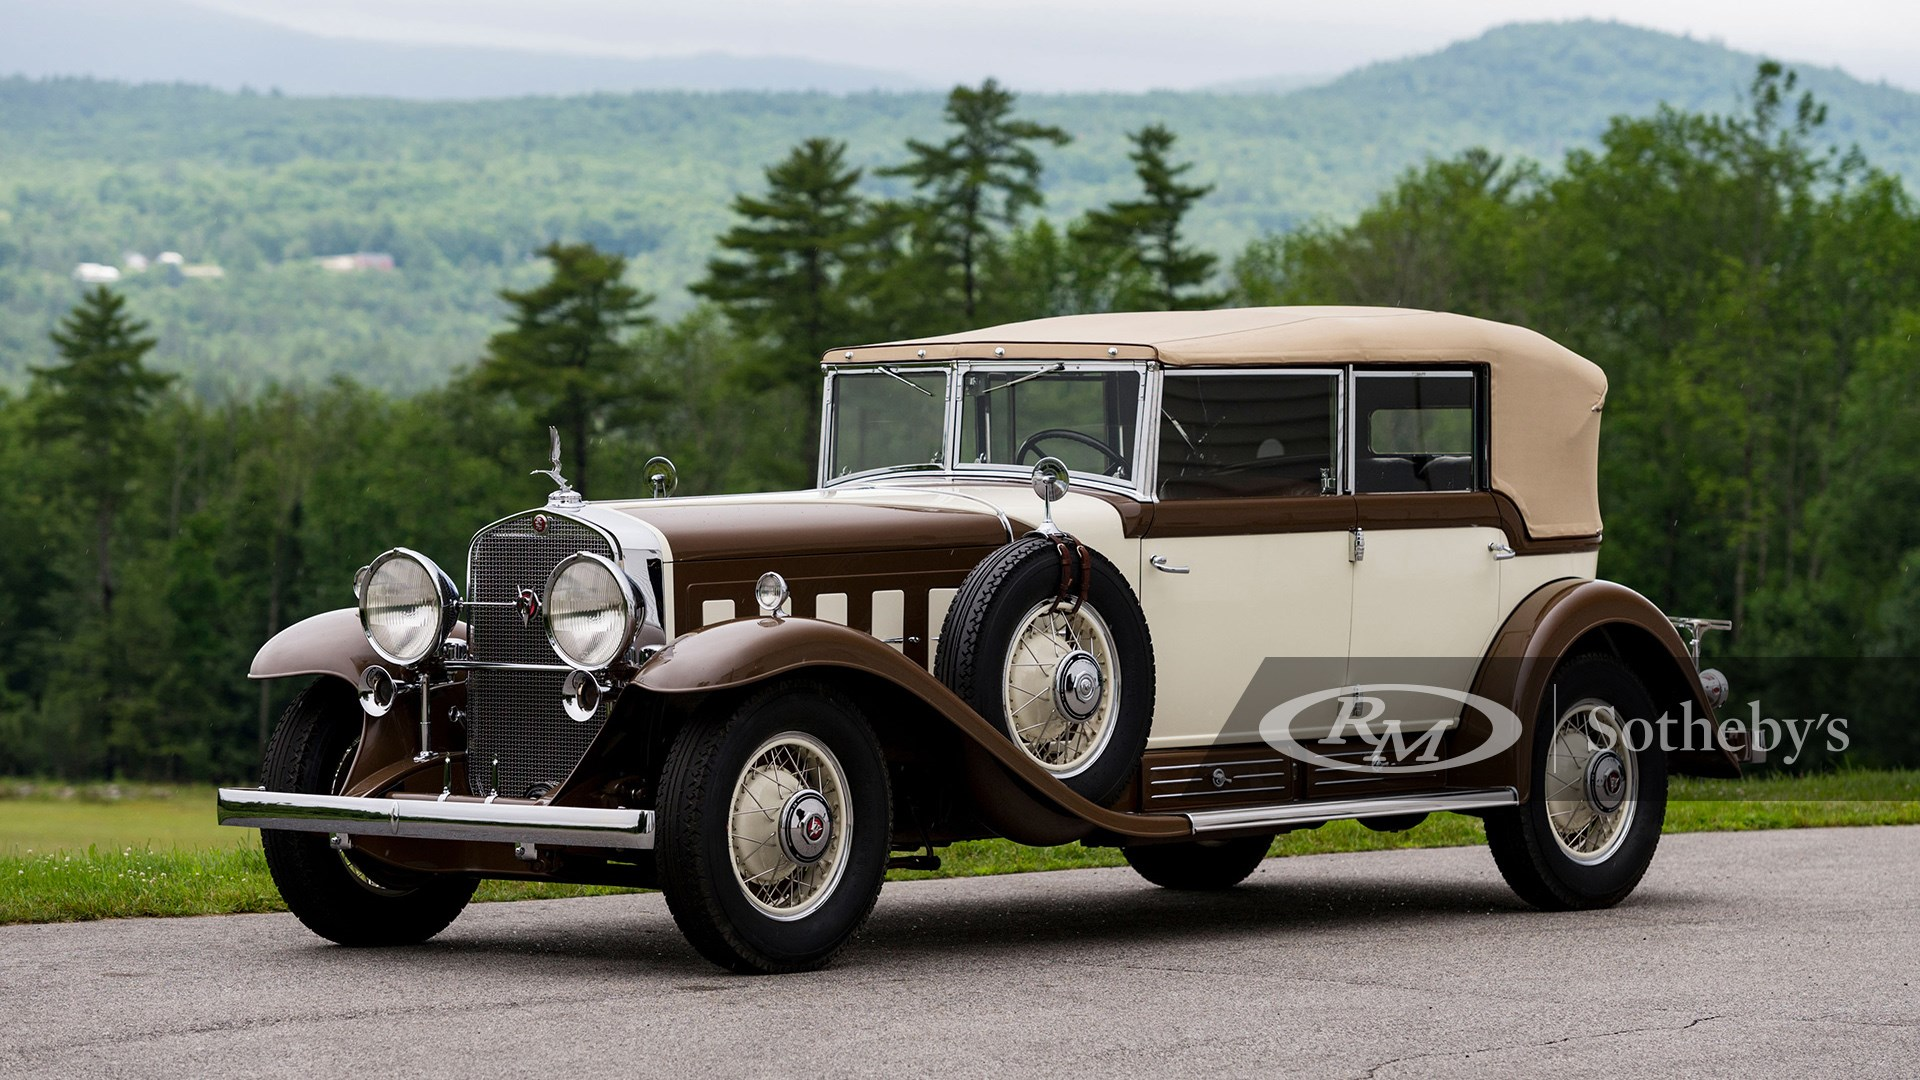 Brown and beige 1930 Cadillac V-16 All-Weather Phaeton by Fleetwood available at RM Sotheby's Amelia Island Live Auction 2021